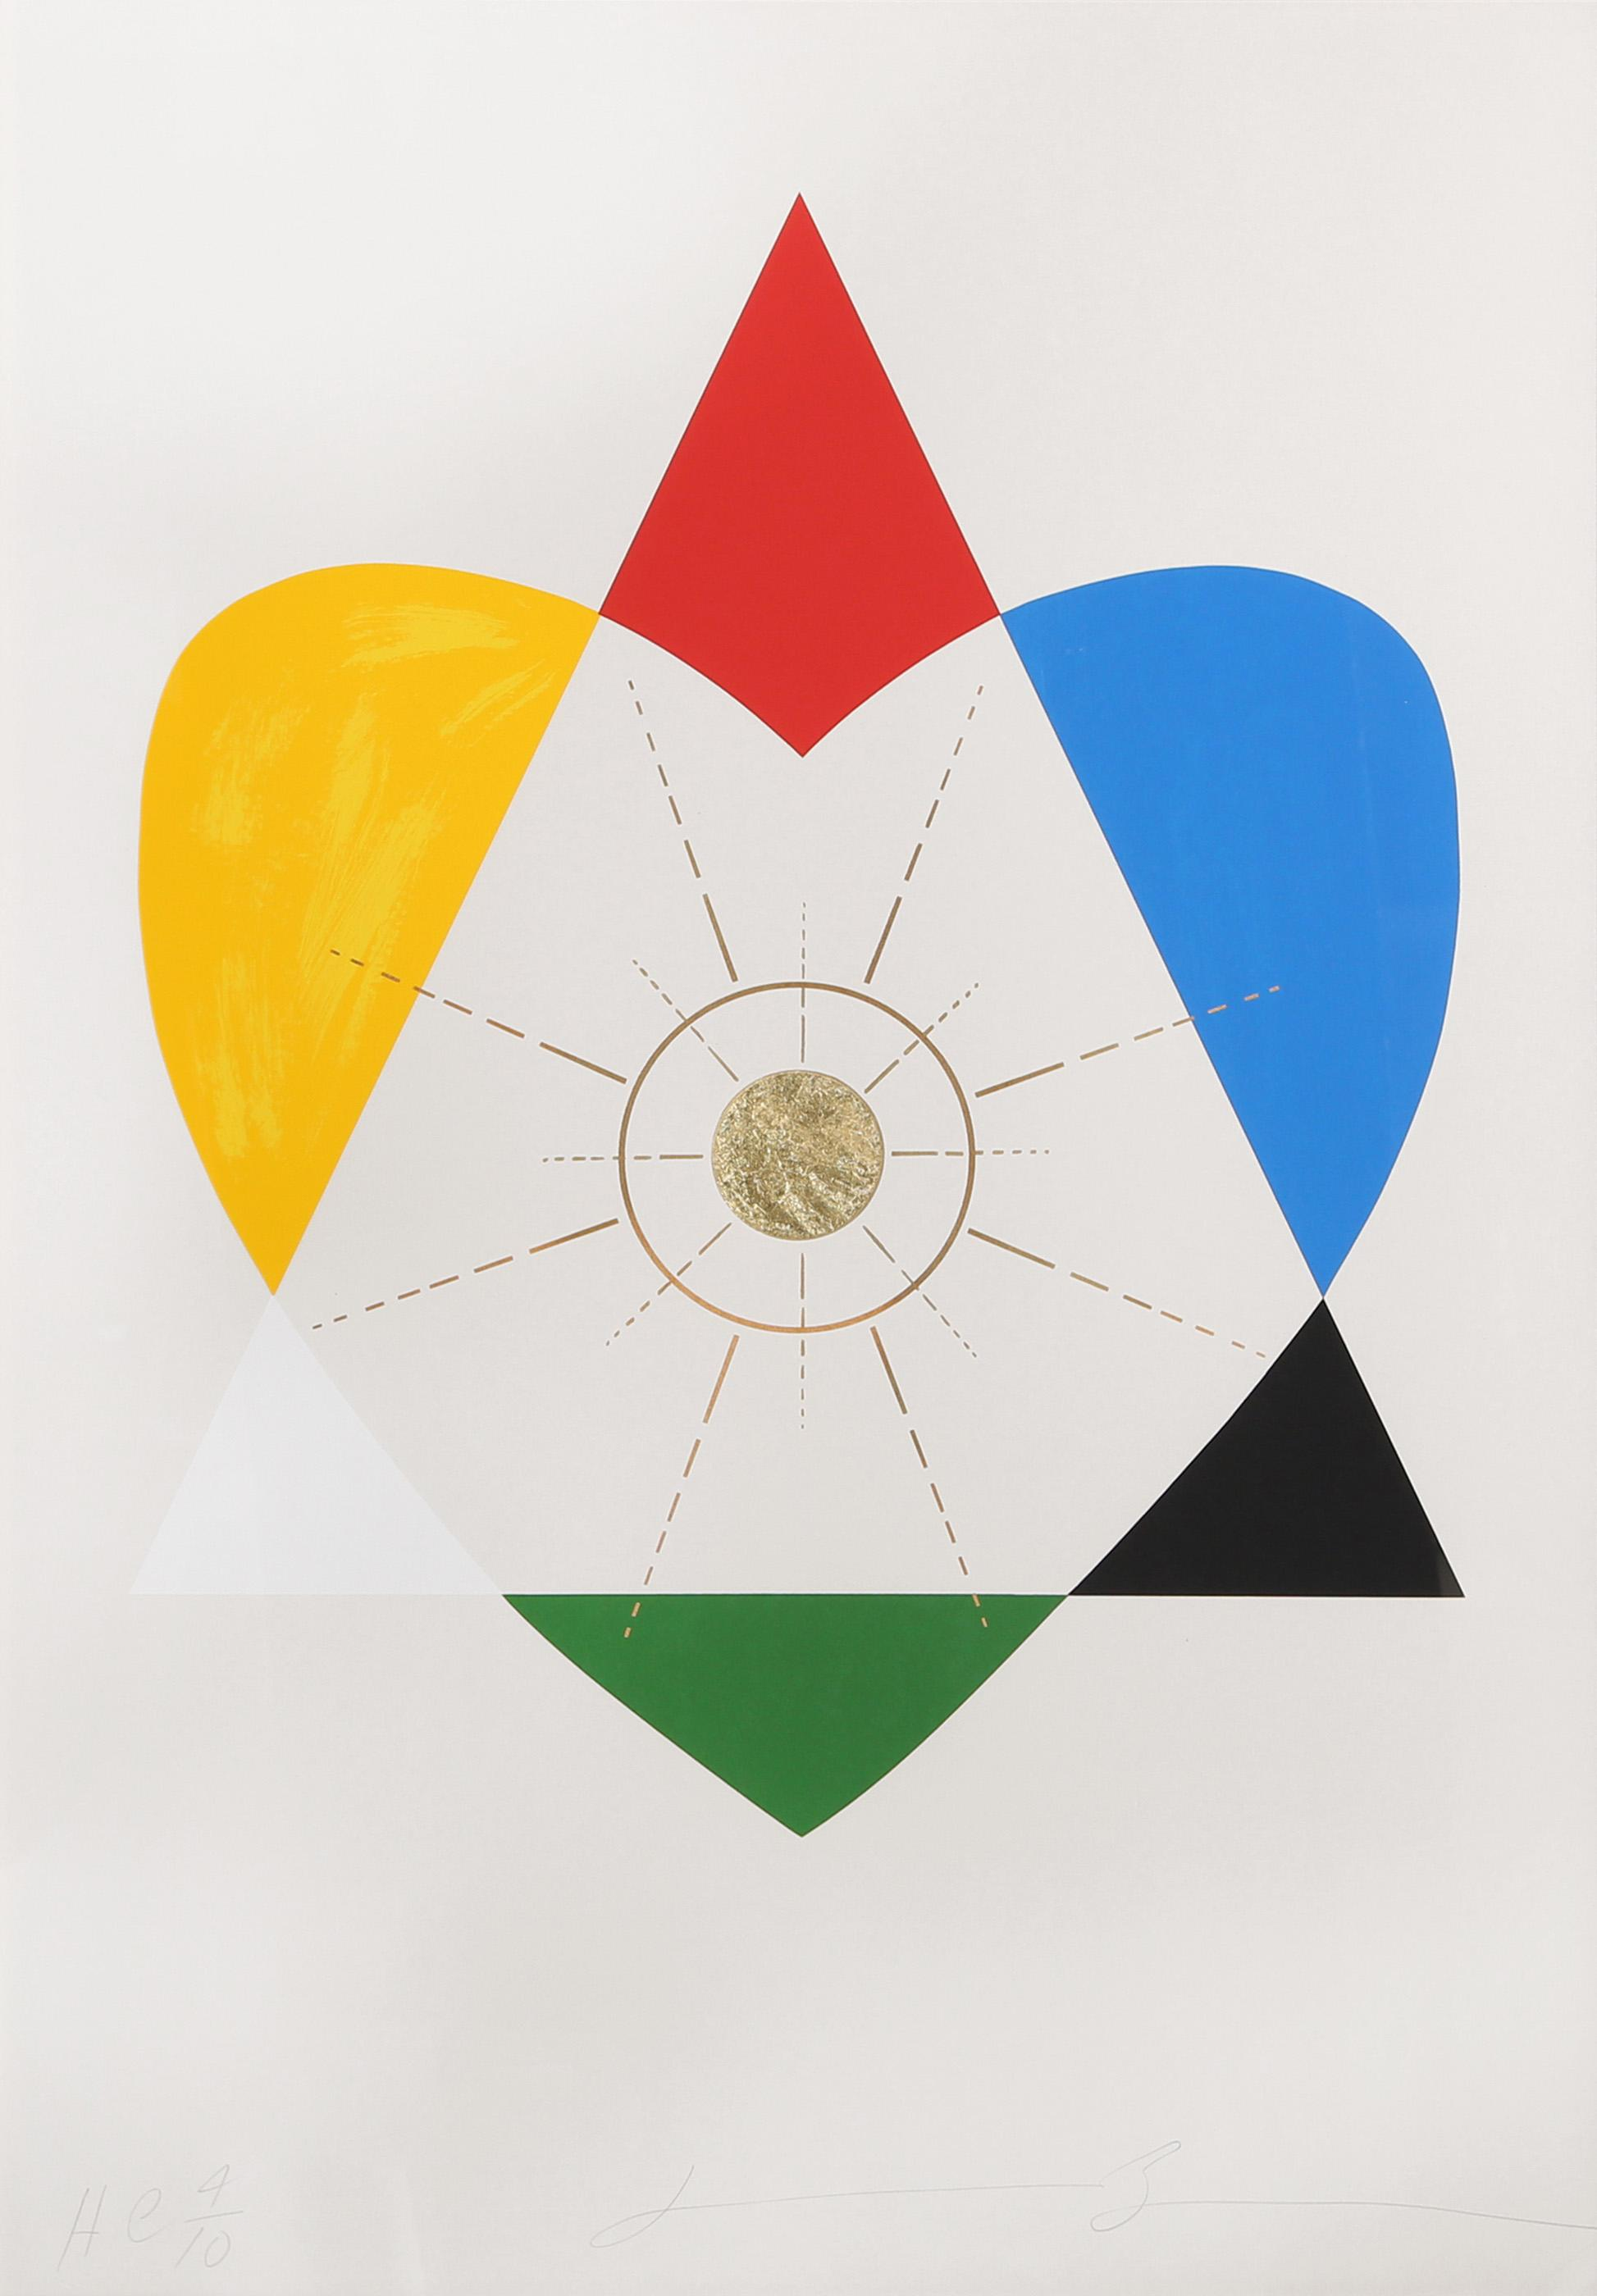 Jonathan Borofsky, The Balance of Love and Work Produces Energy, Screenprint and 22ct. Gold-leaf on Fabriano